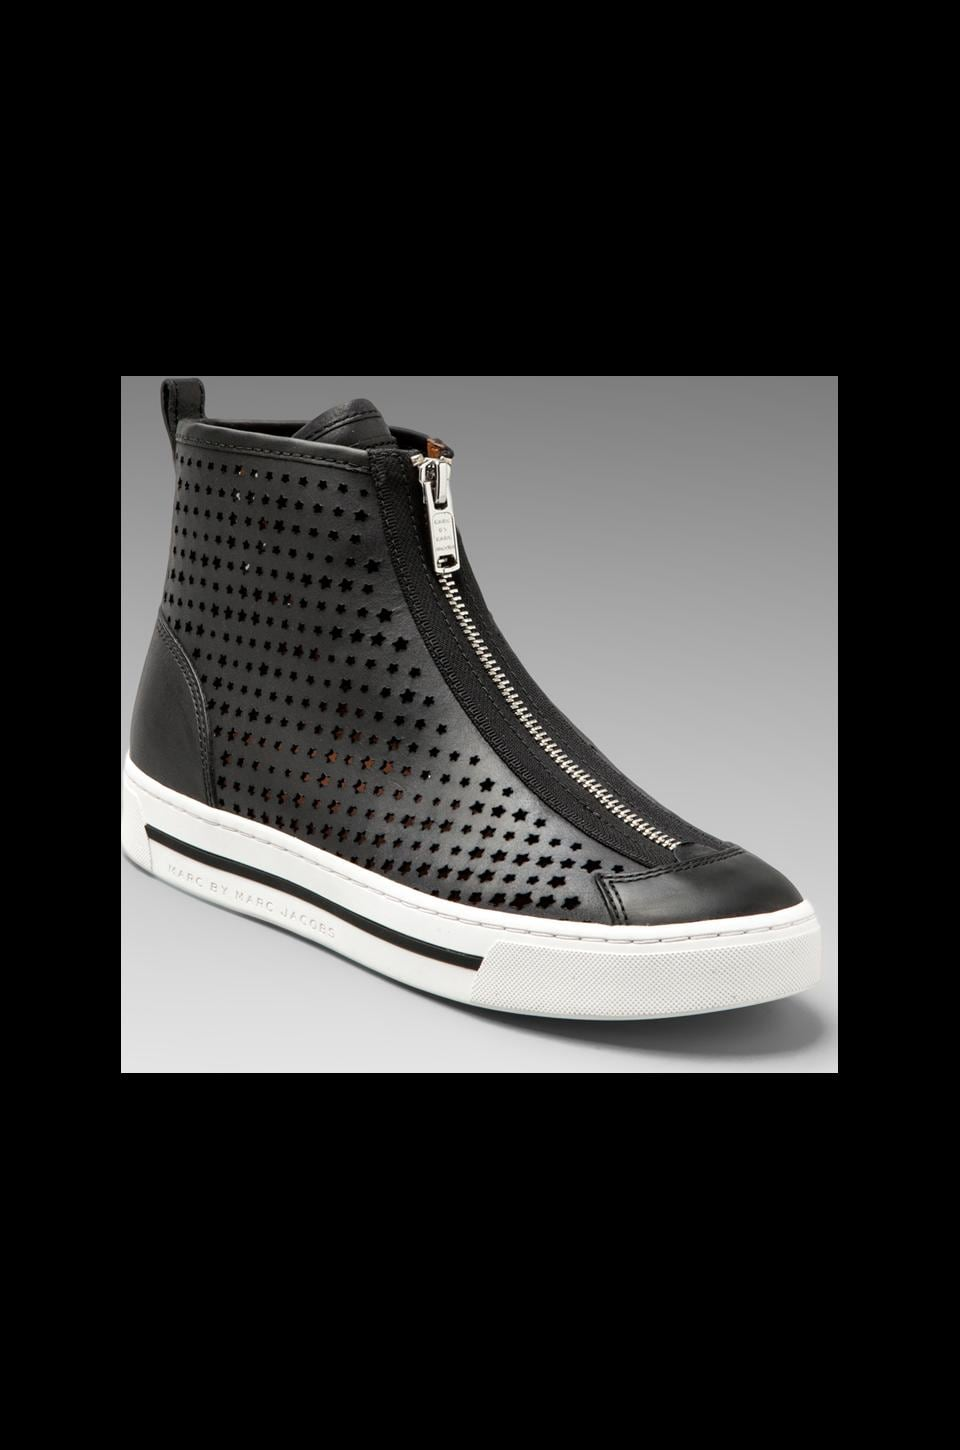 Marc by Marc Jacobs Star Struck Heavy Calf Perforated Sneaker in Black